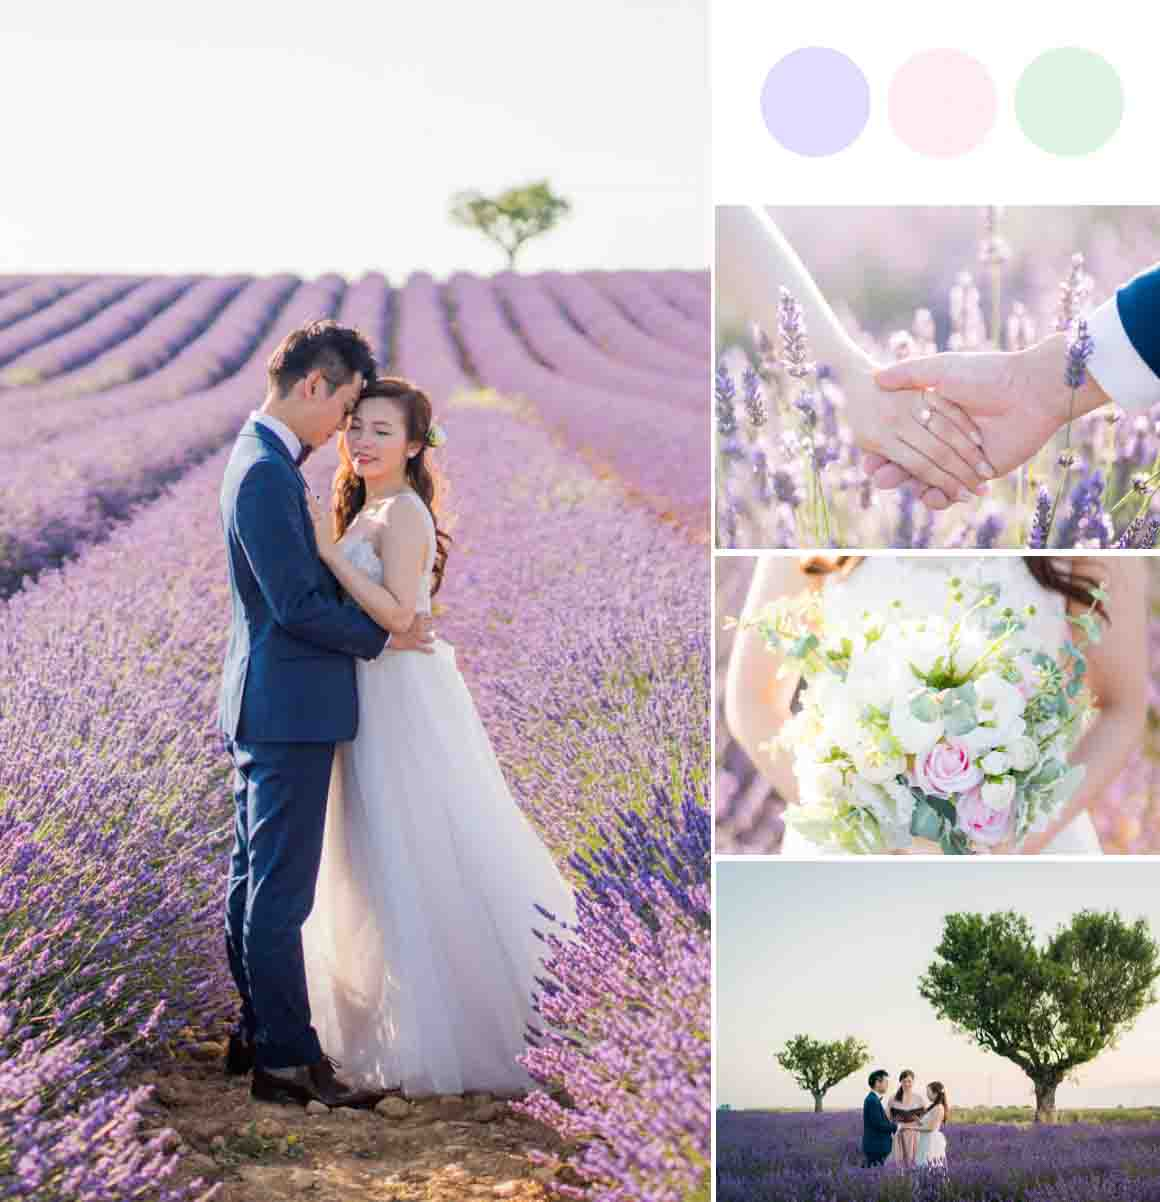 A Perfect Provence Elopement in a Sea of Romantic Lavender Fields